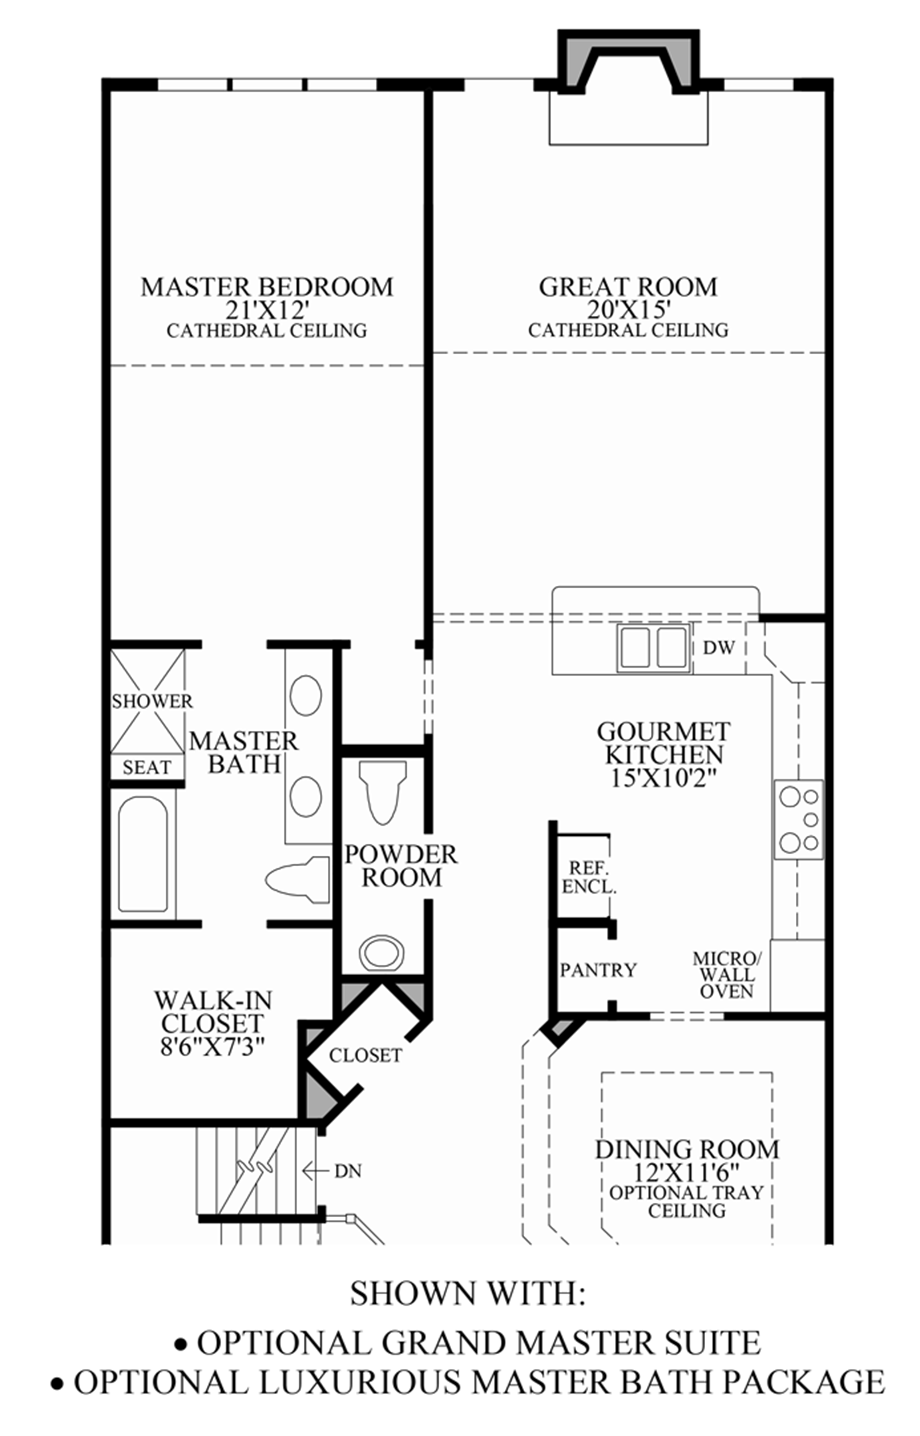 enclave at pleasantville the henderson home design optional grand master suite luxurious master bath package 1st floor floor plan